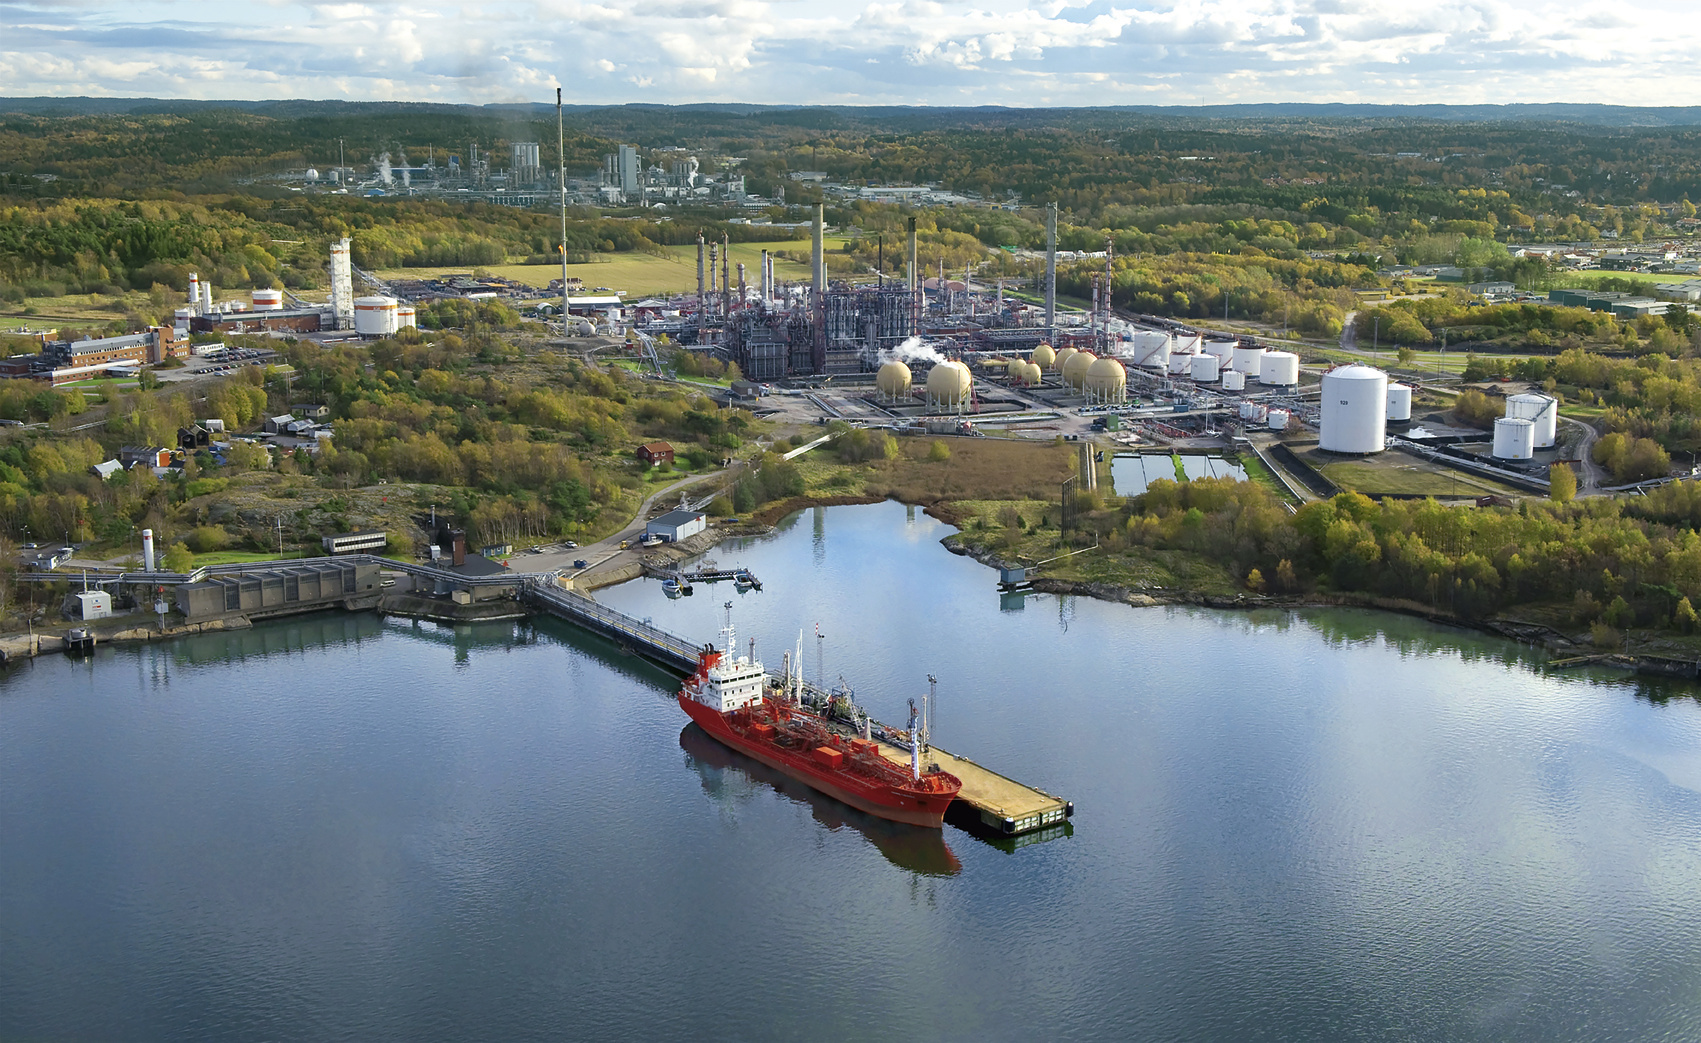 Borealis launches study for chemical recycling plant in Sweden